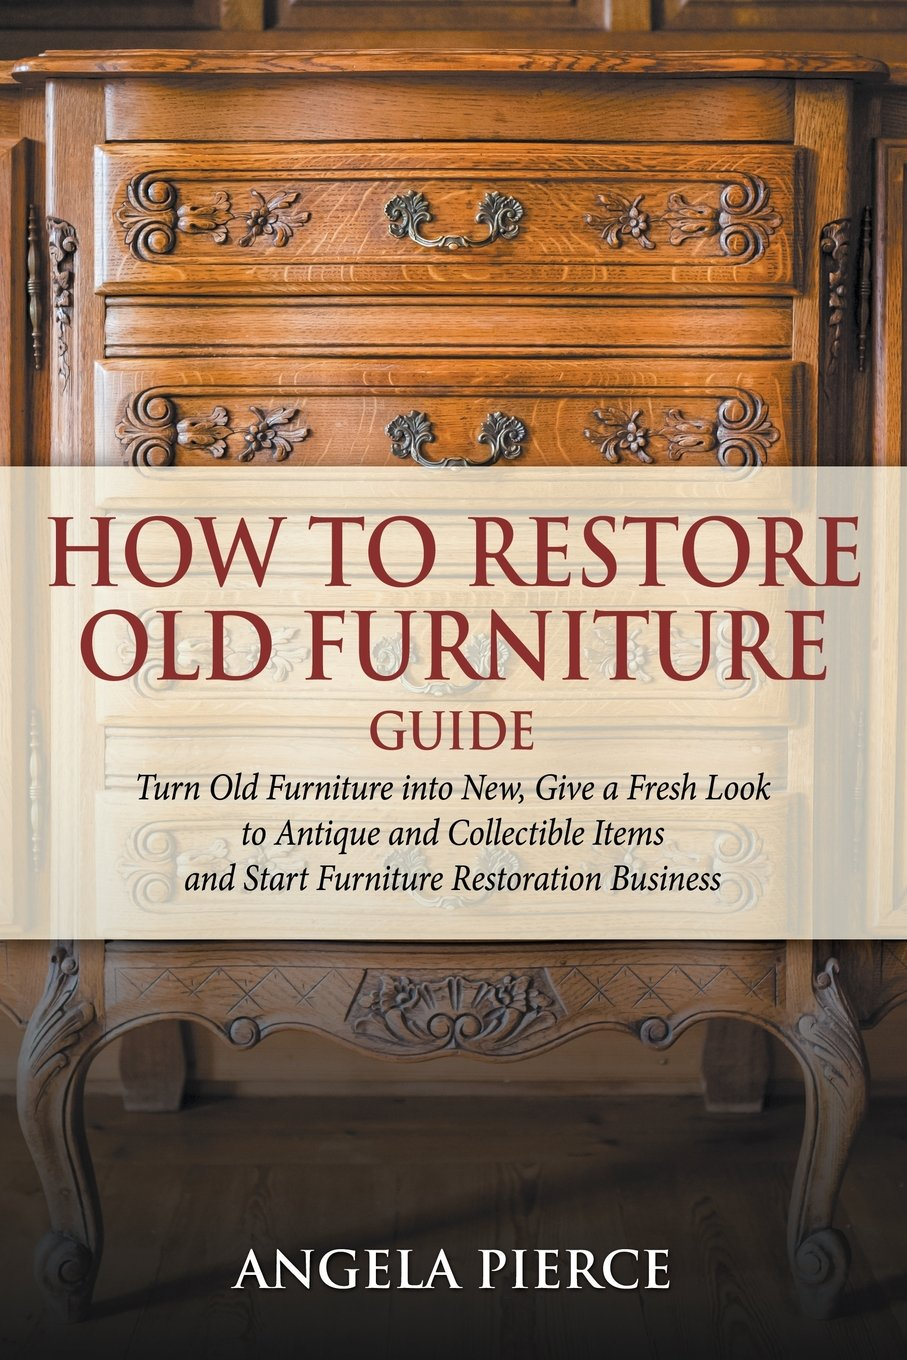 How to Restore Old Furniture Guide: Turn Old Furniture into New, Give a  Fresh Look to Antique and Collectible Items and Start Furniture Restoration  ... - How To Restore Old Furniture Guide: Turn Old Furniture Into New